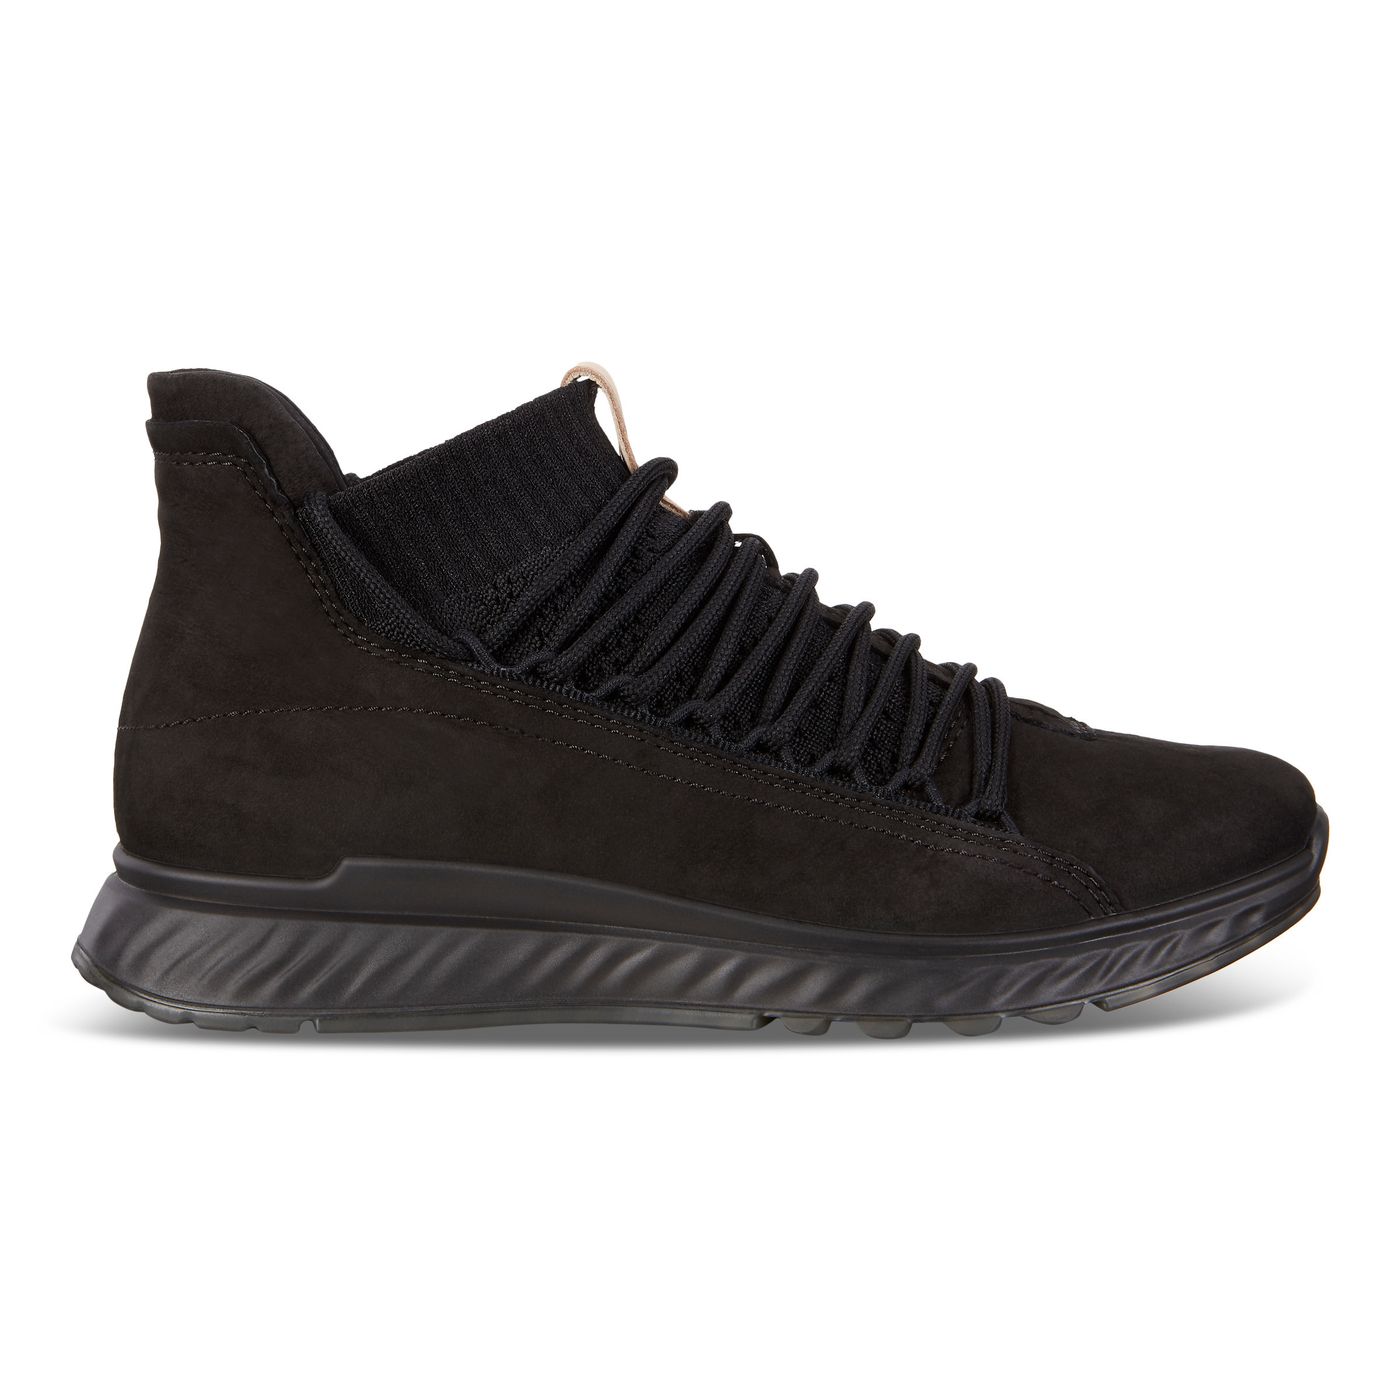 d20805ede50cac ECCO ST.1 Women s Sneakers